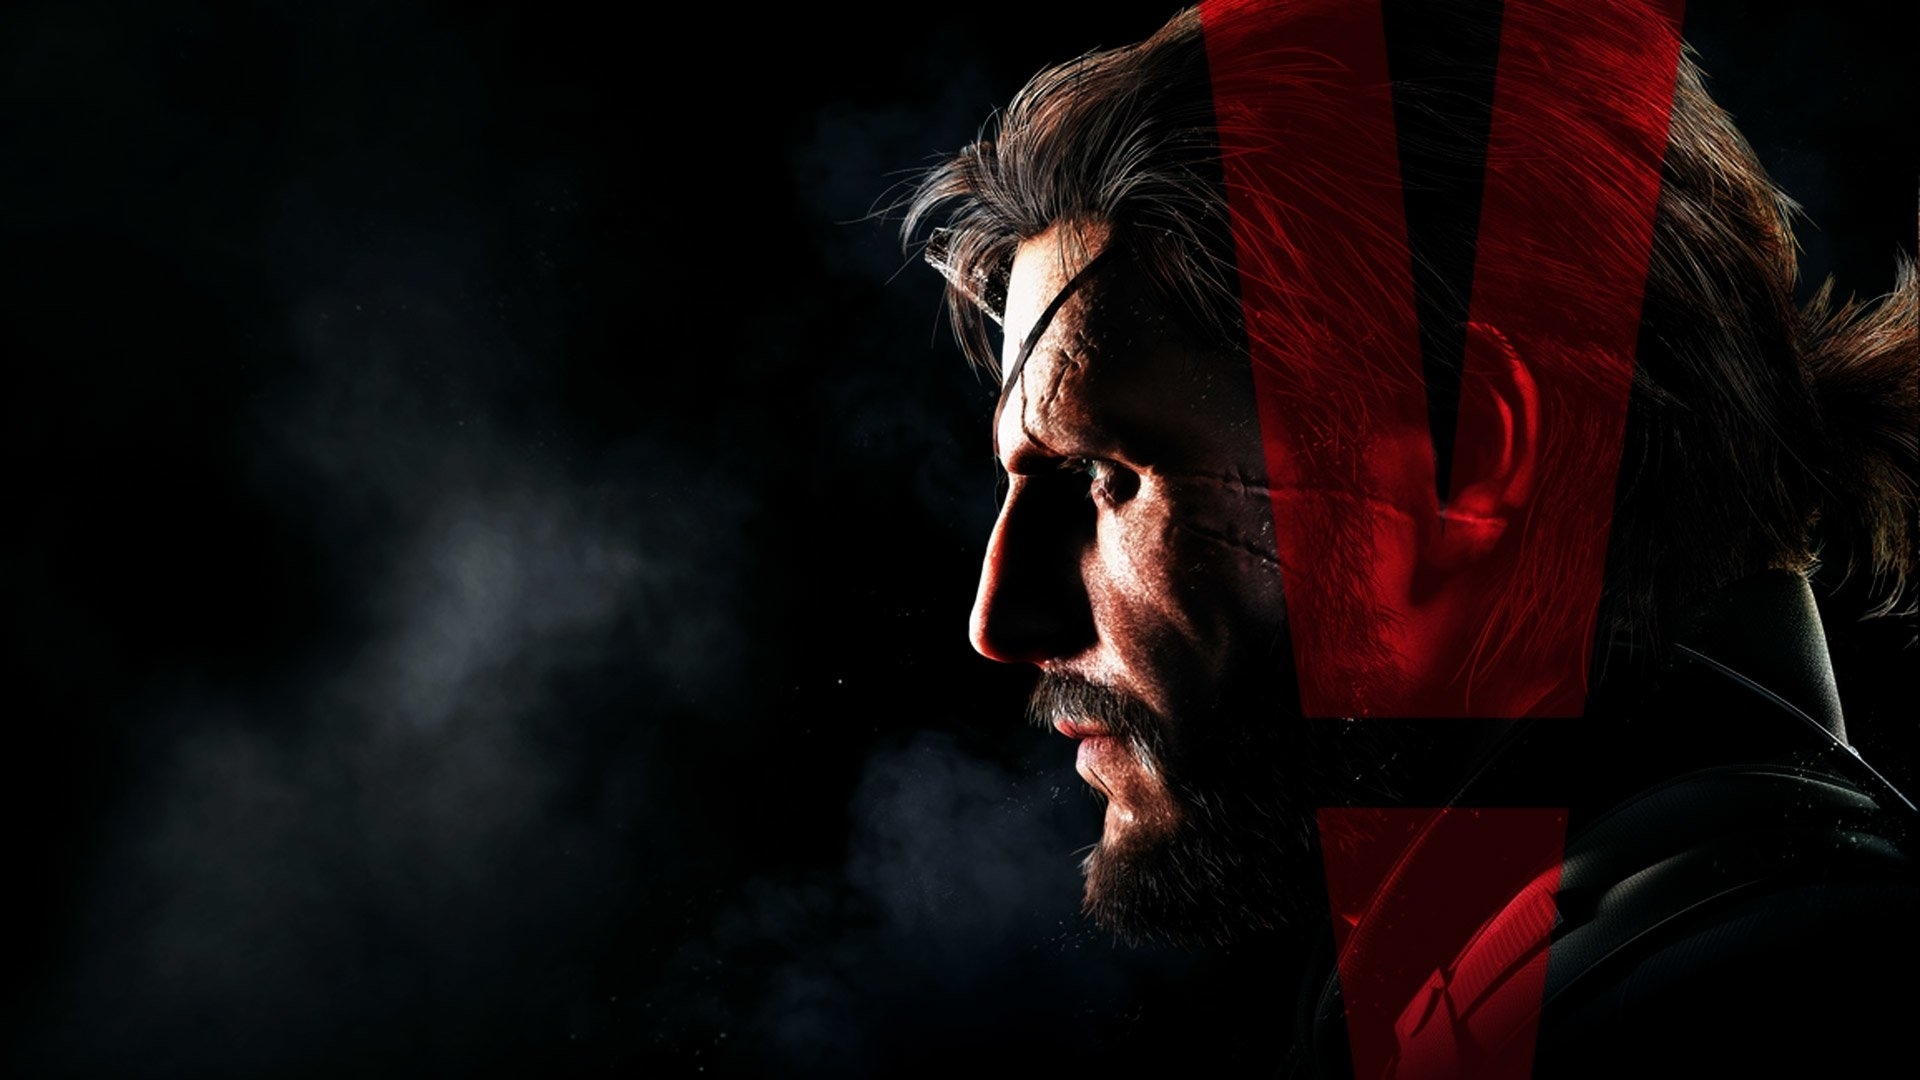 380 metal gear solid hd wallpapers | background images - wallpaper abyss